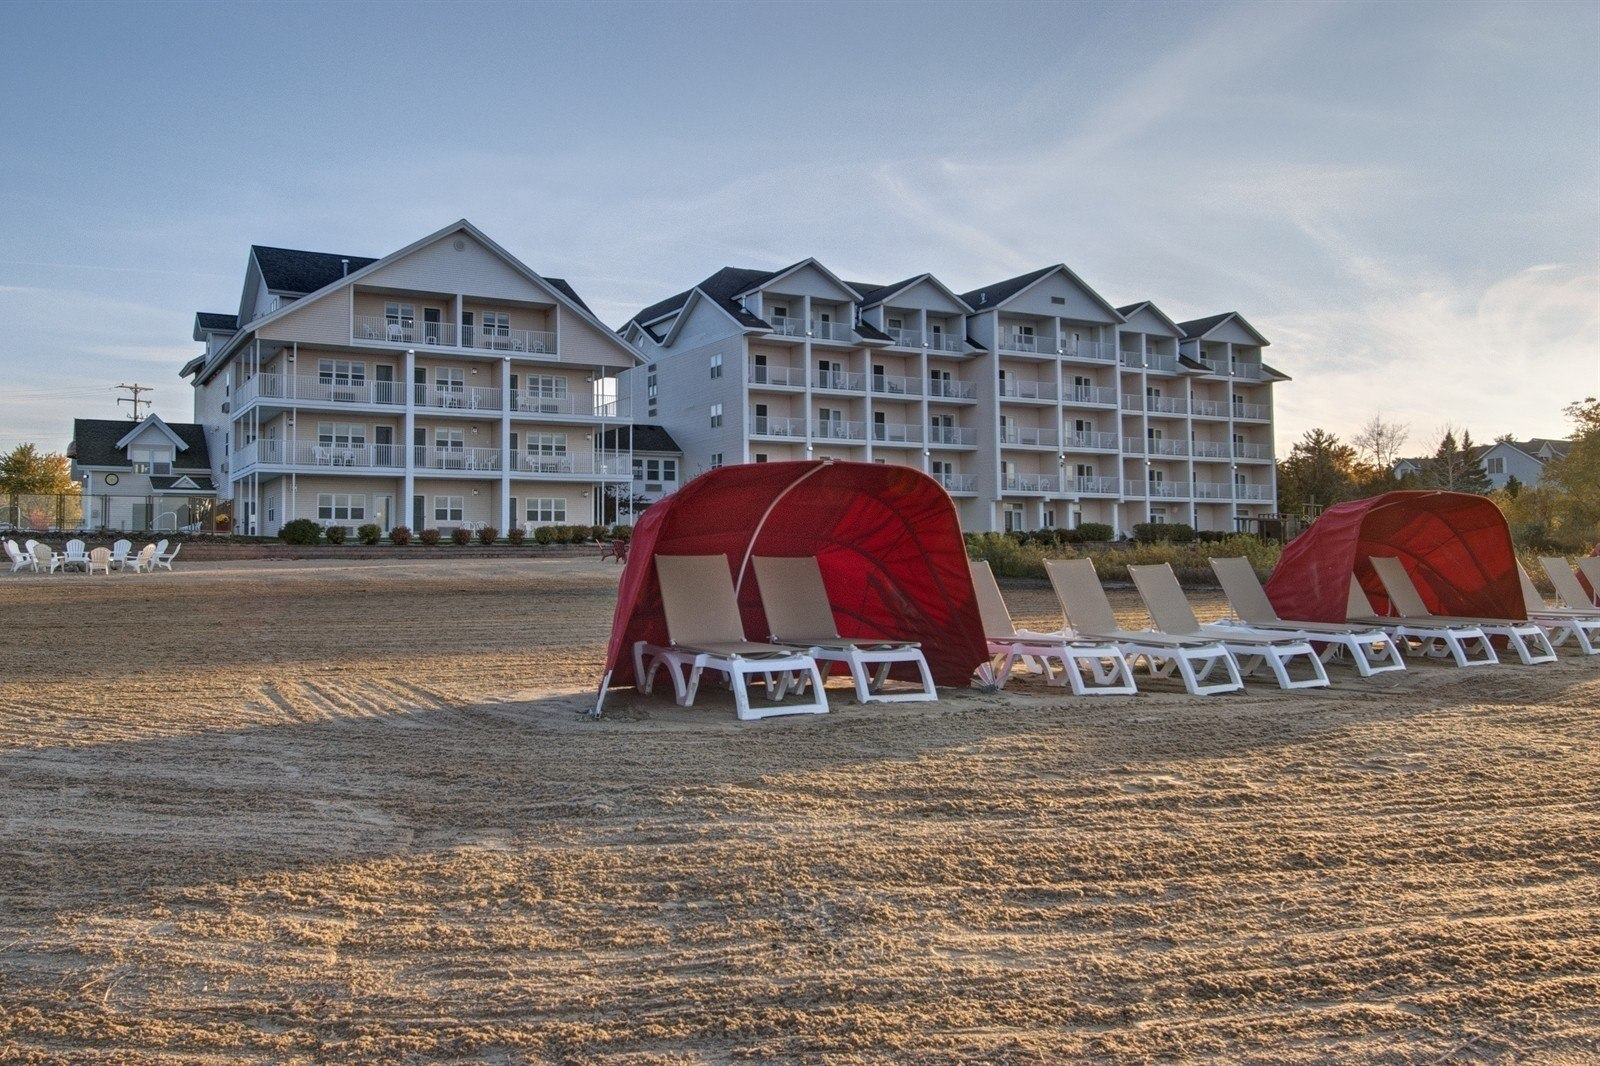 Beach at Cherry Tree Inn & Suites Hotel in Traverse City Michigan